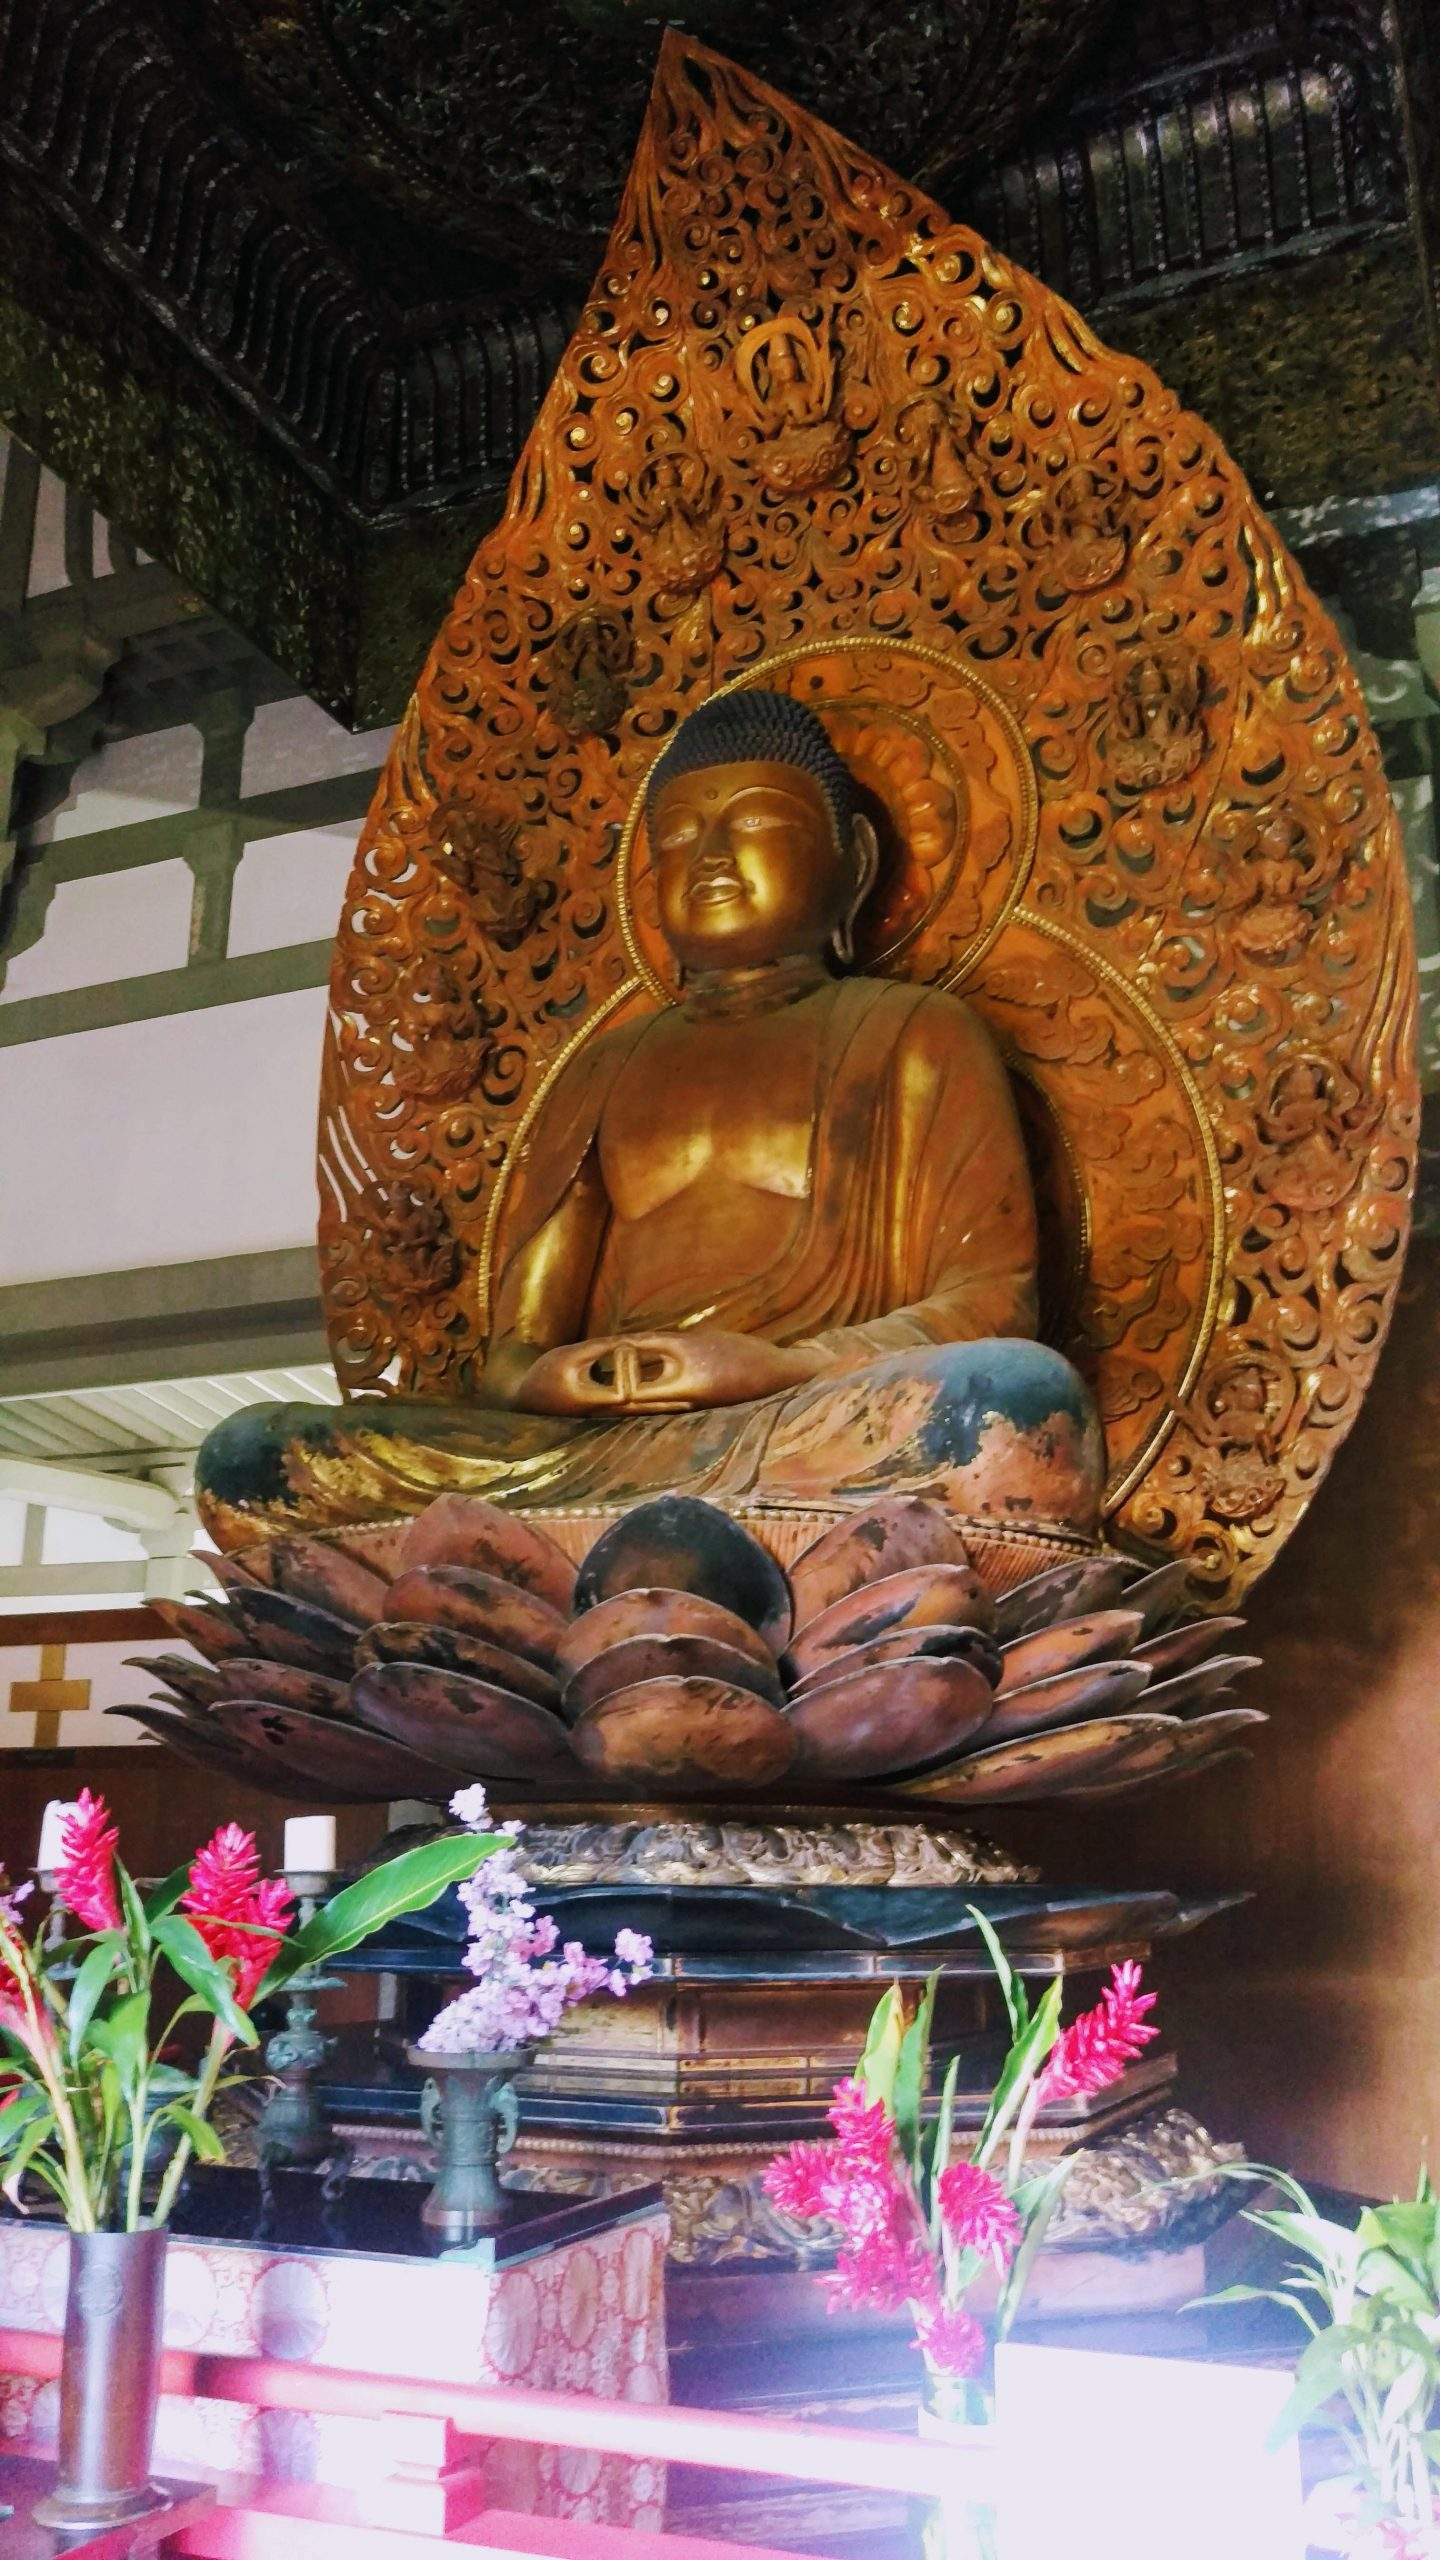 Large gold Buddha statue at Hawaii's Buddhist Temple